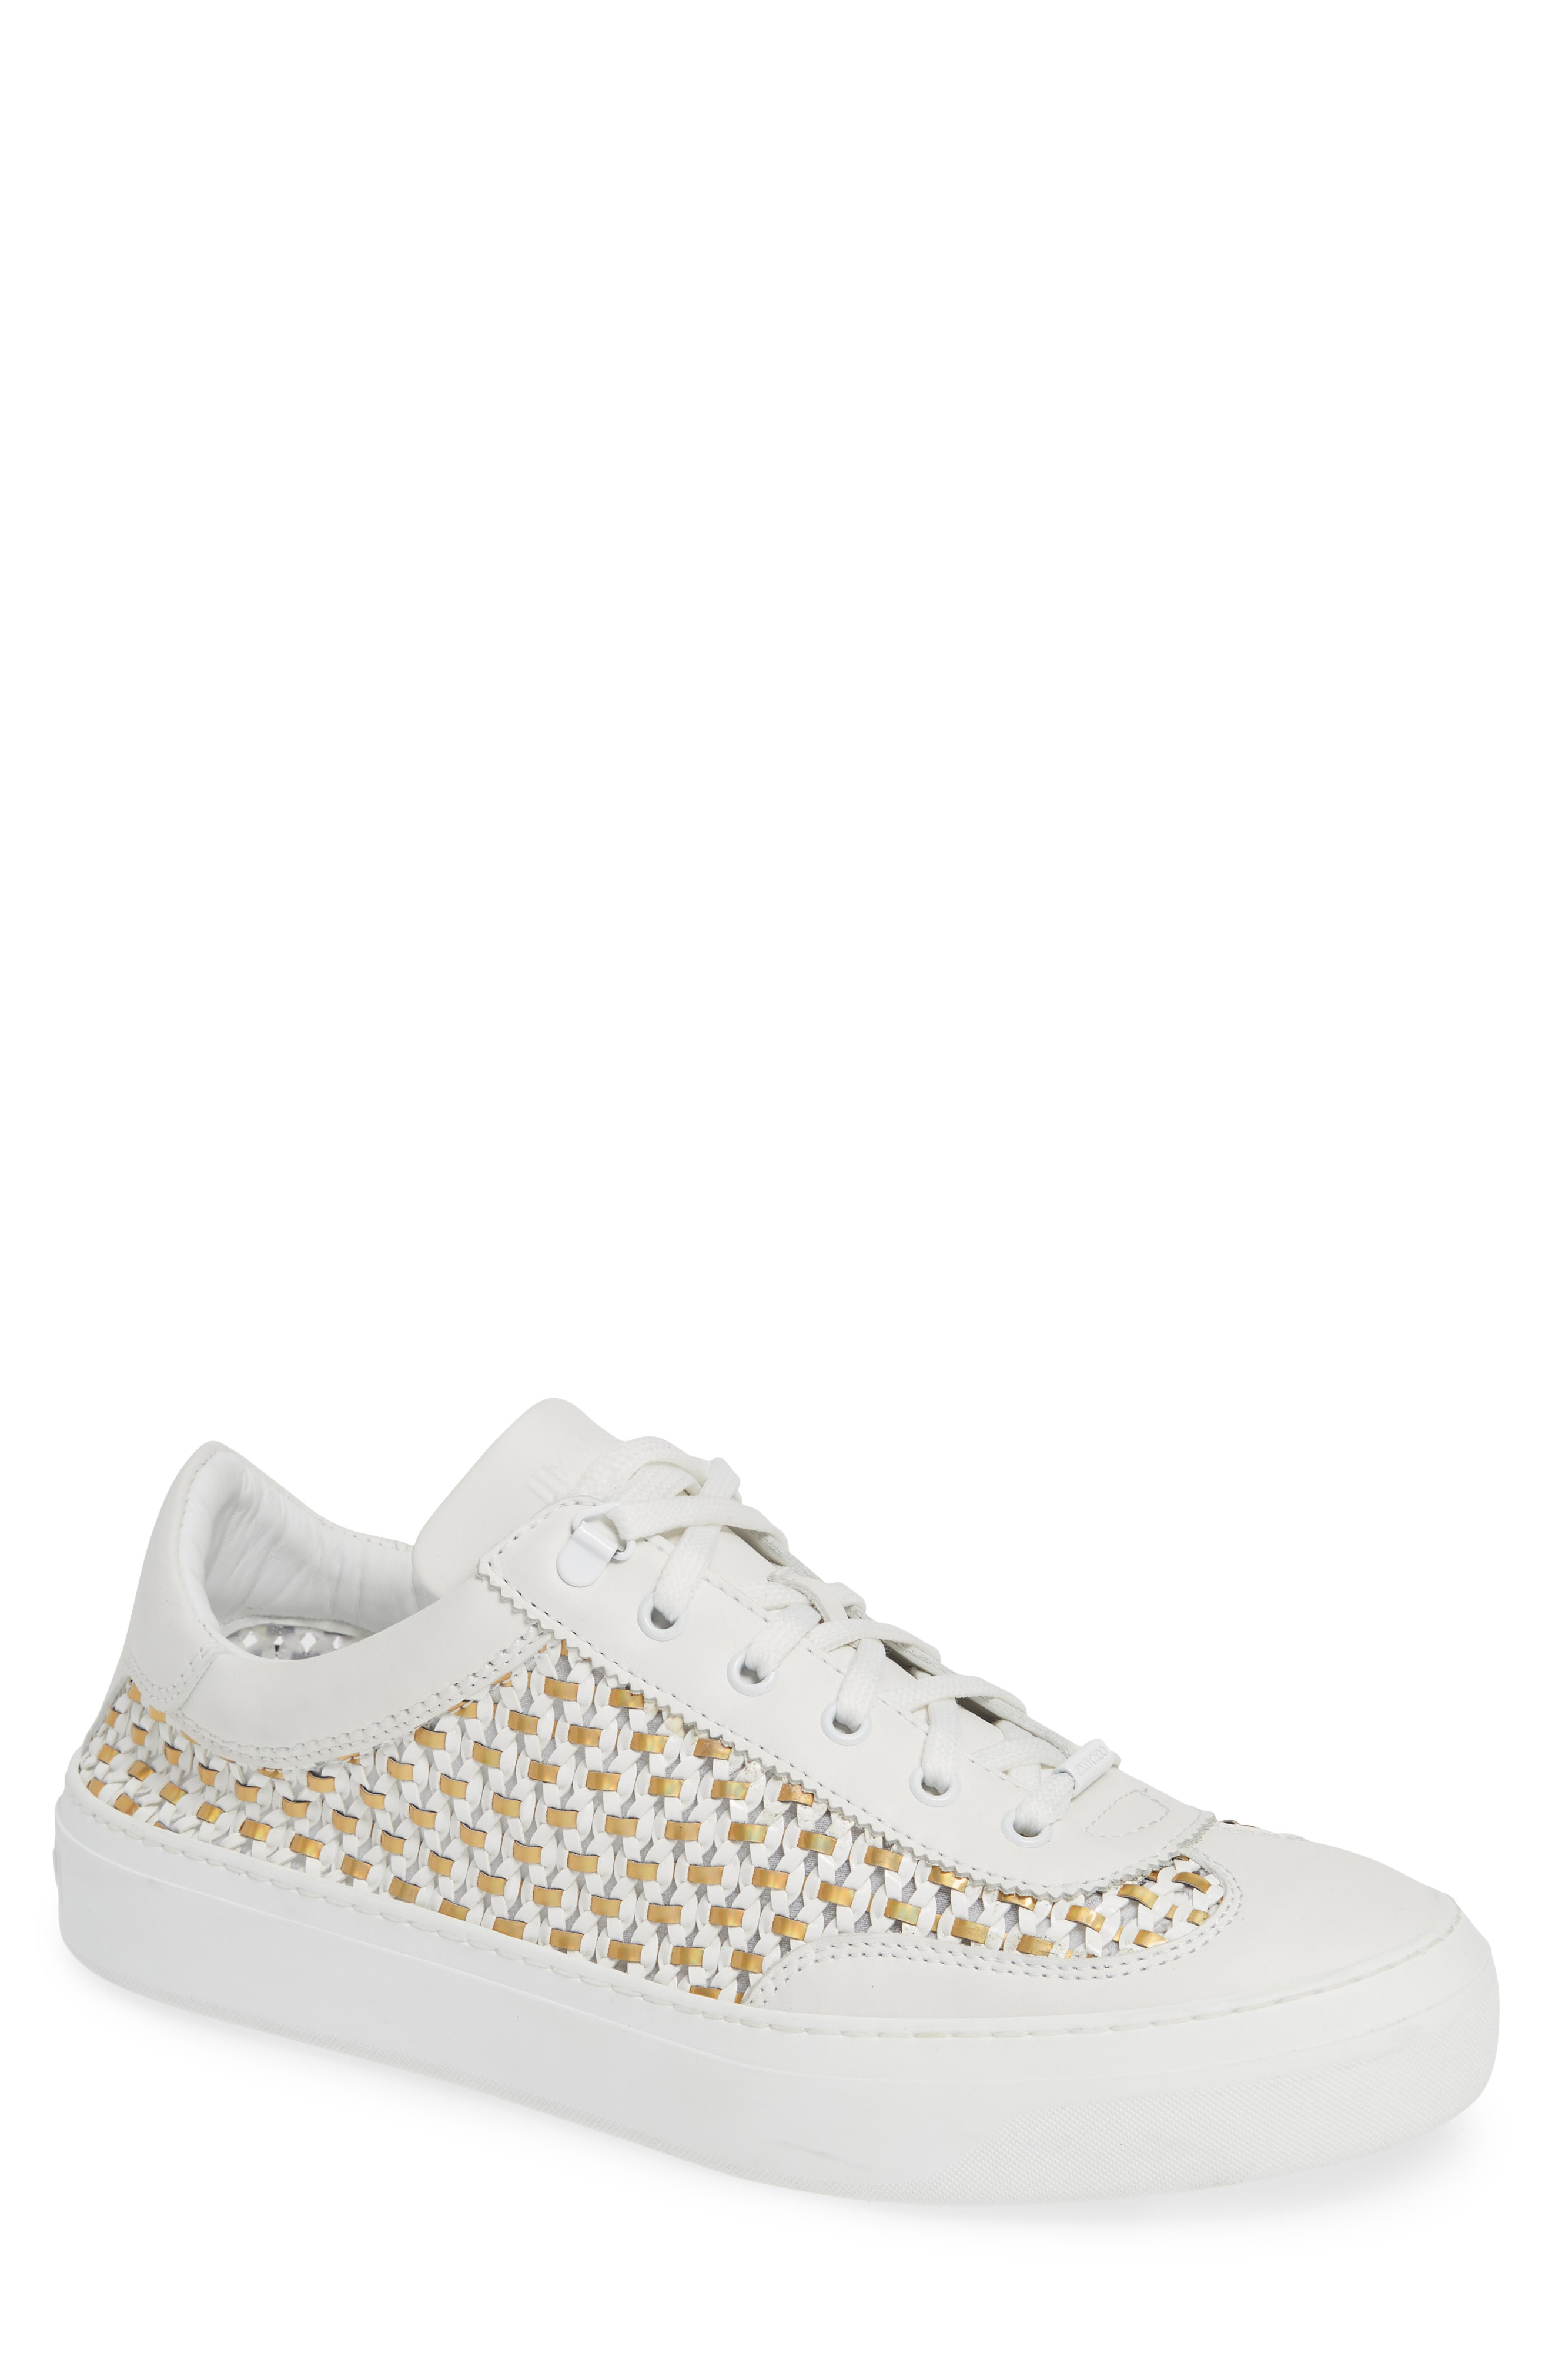 73a21def32c Jimmy Choo Ace Mux Sneaker In White Mix